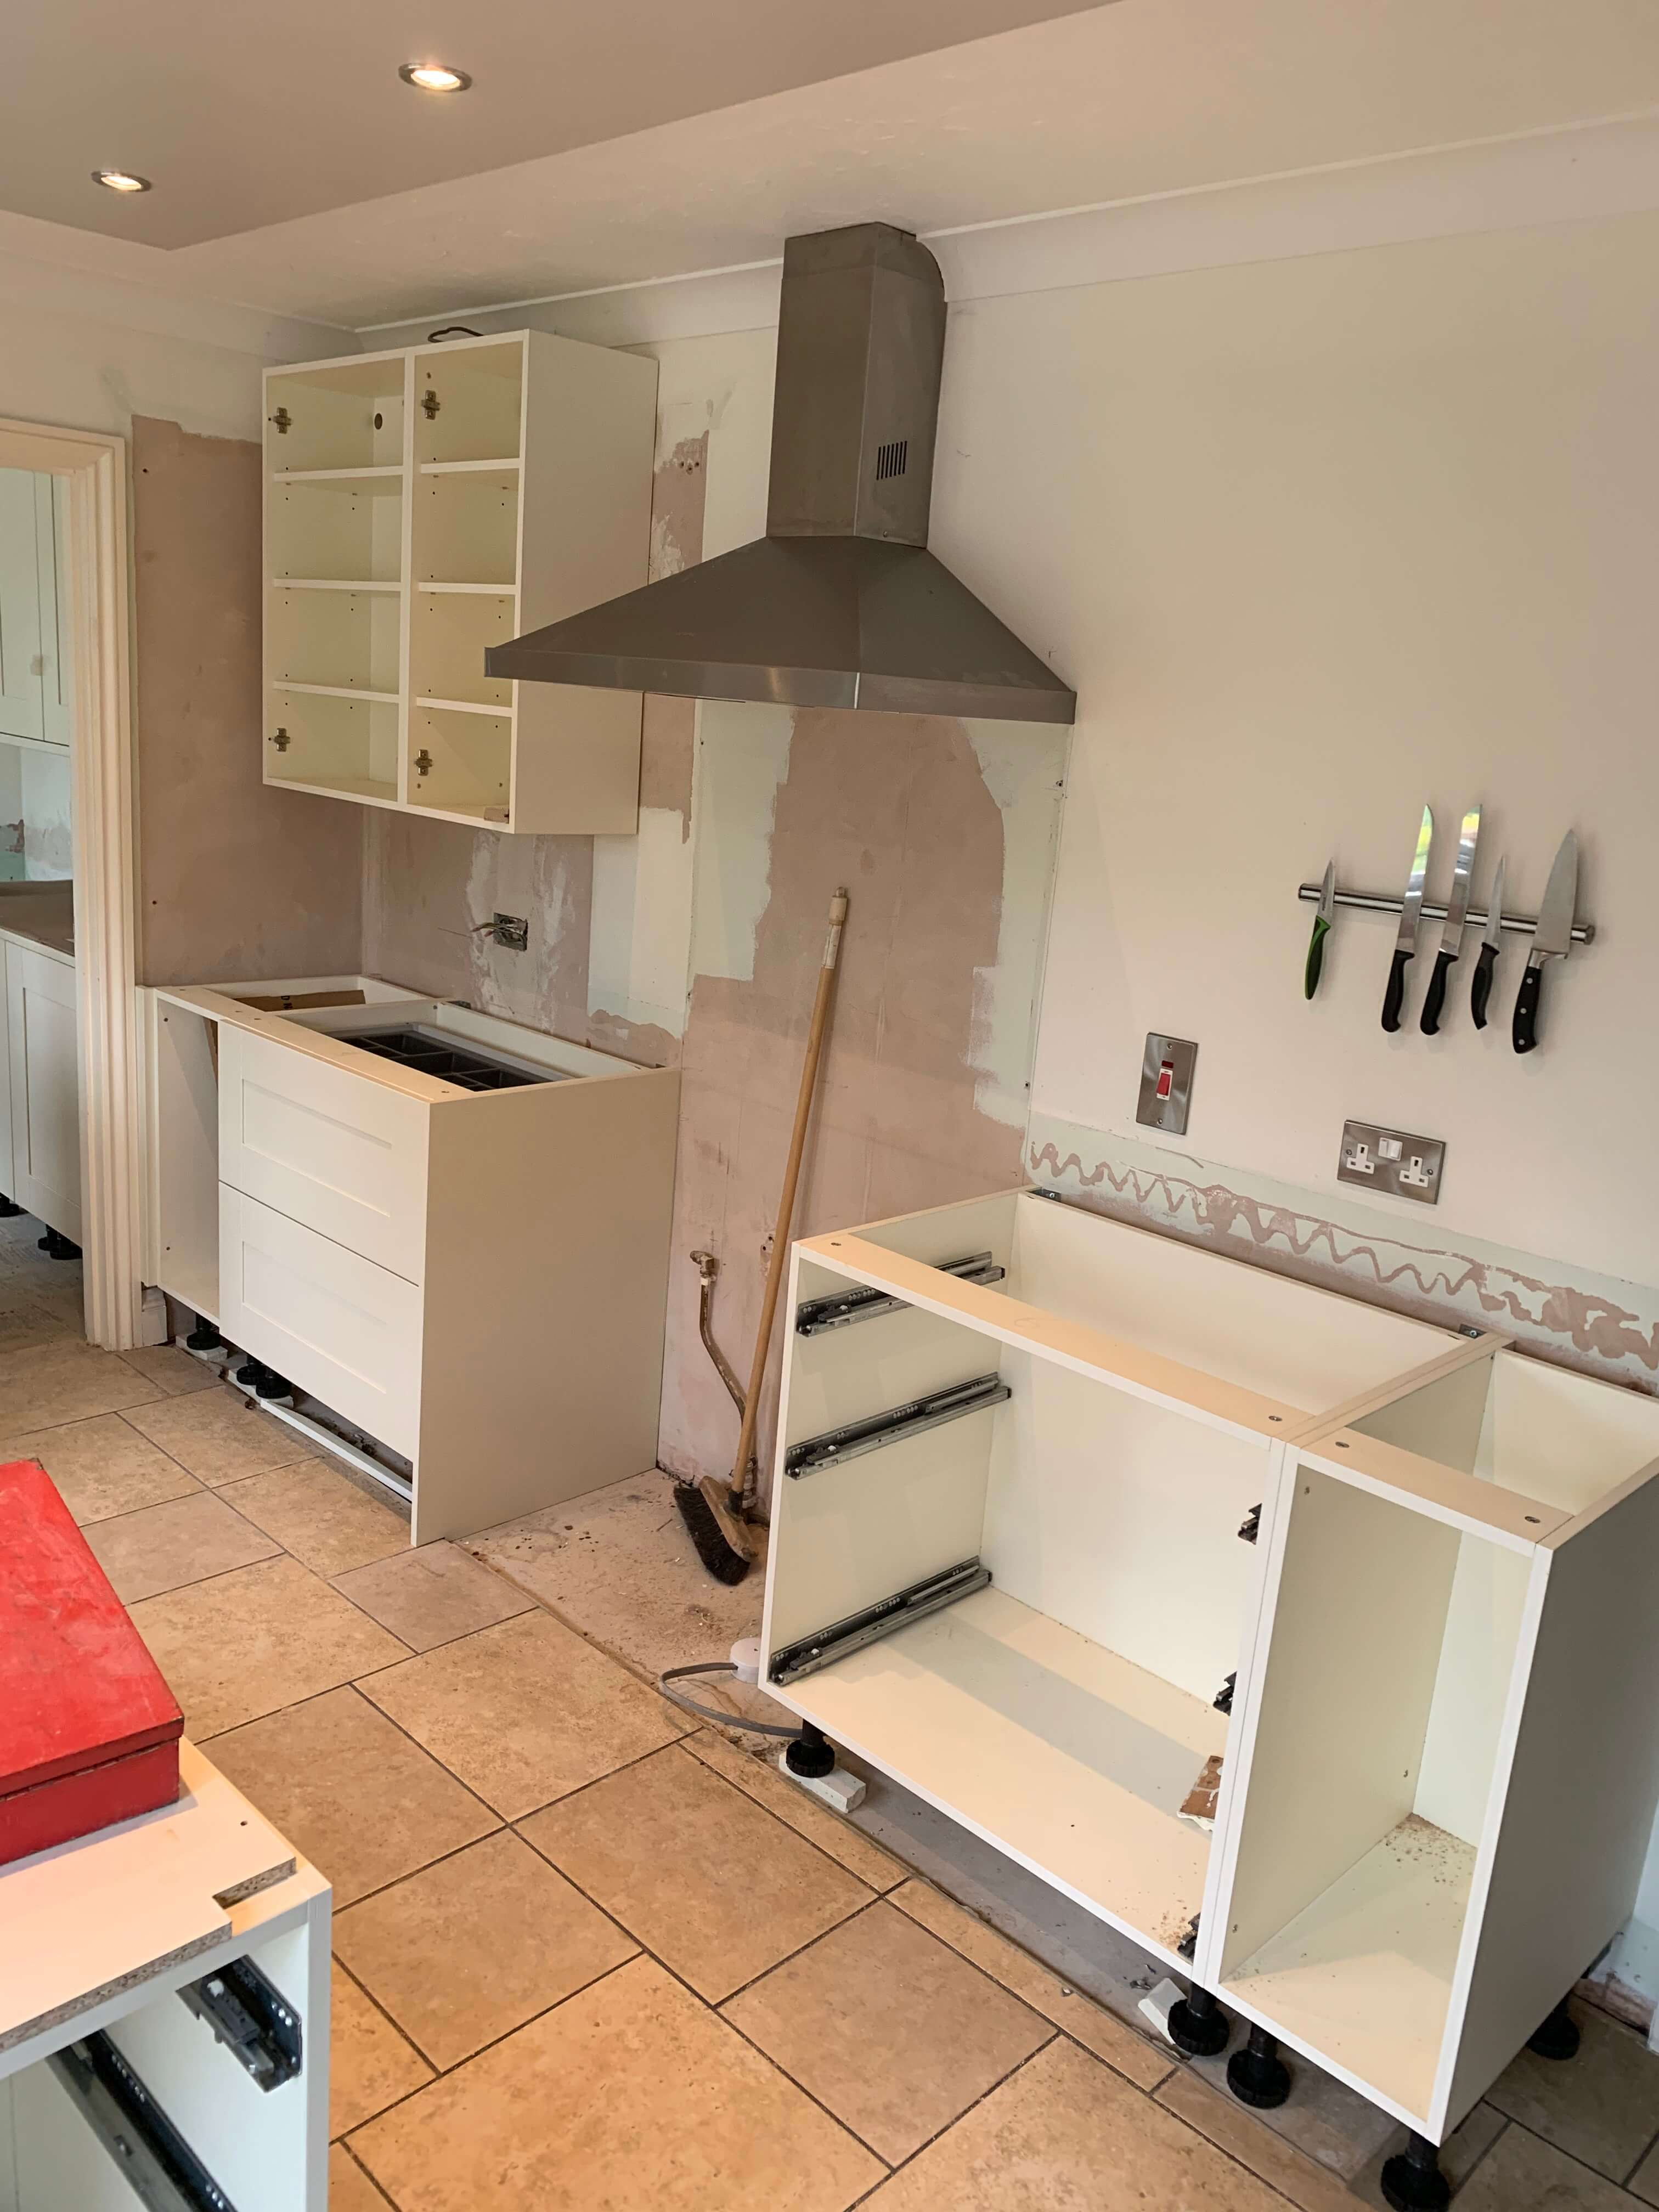 Kitchen wall units and extractor are fitted